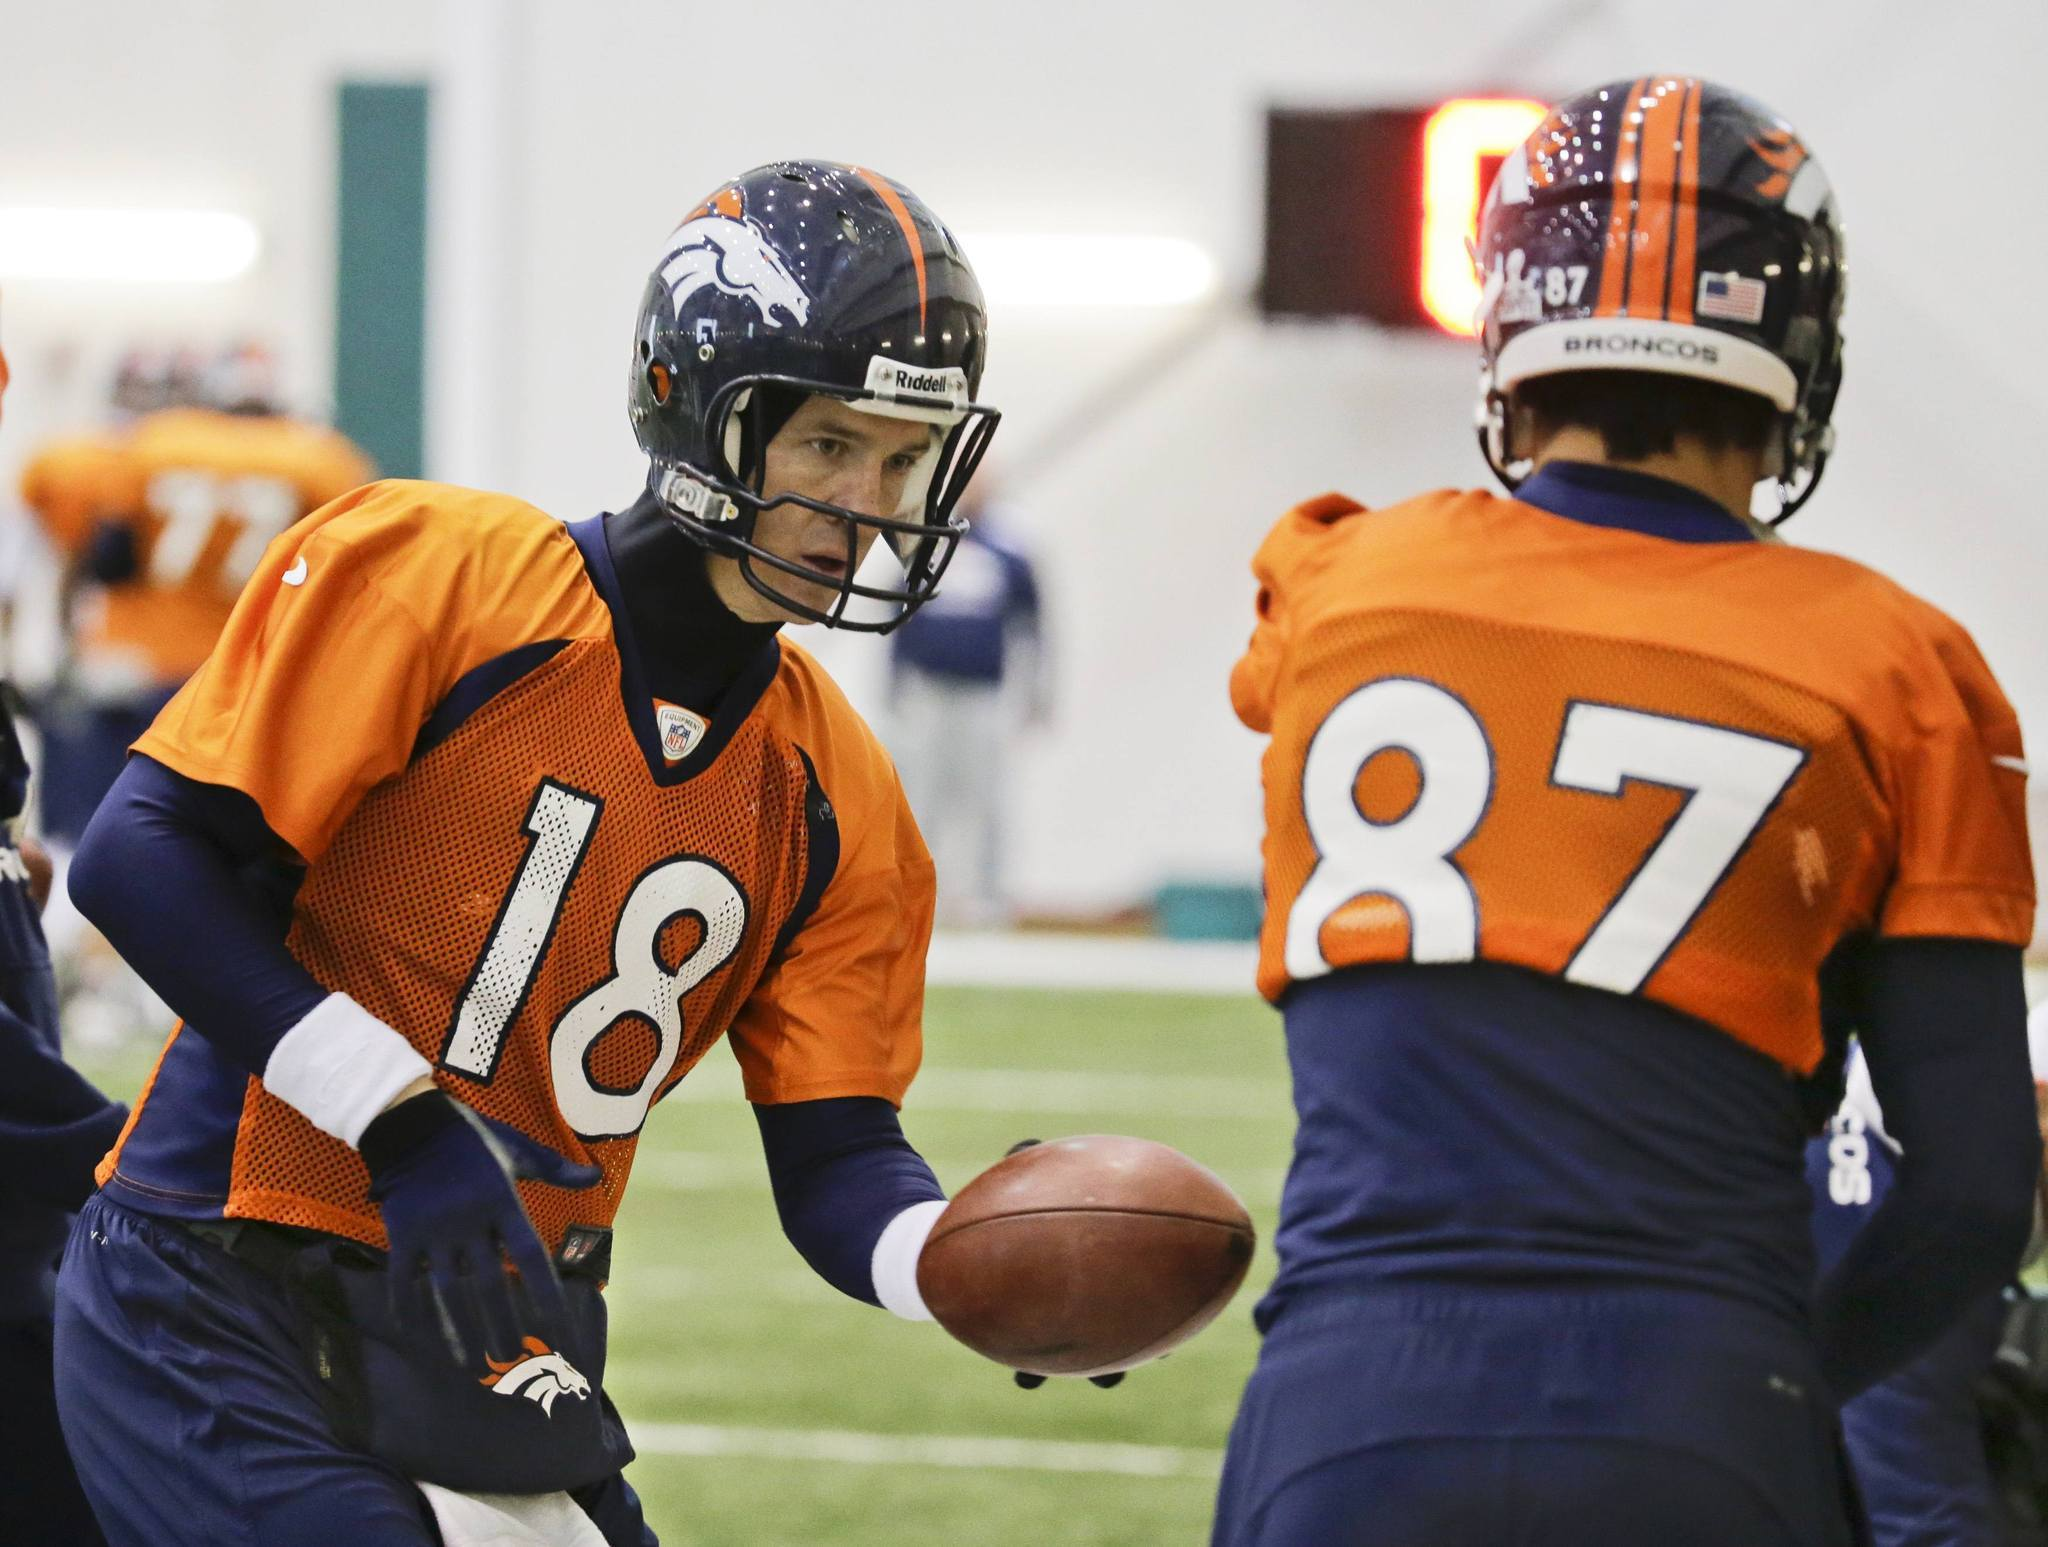 Denver Broncos quarterback Peyton Manning (L) practices handing off the ball with wide receiver Eric Decker during their practice session for the Super Bowl at the New York Jets Training Center in Florham Park, New Jersey, January 31, 2014.